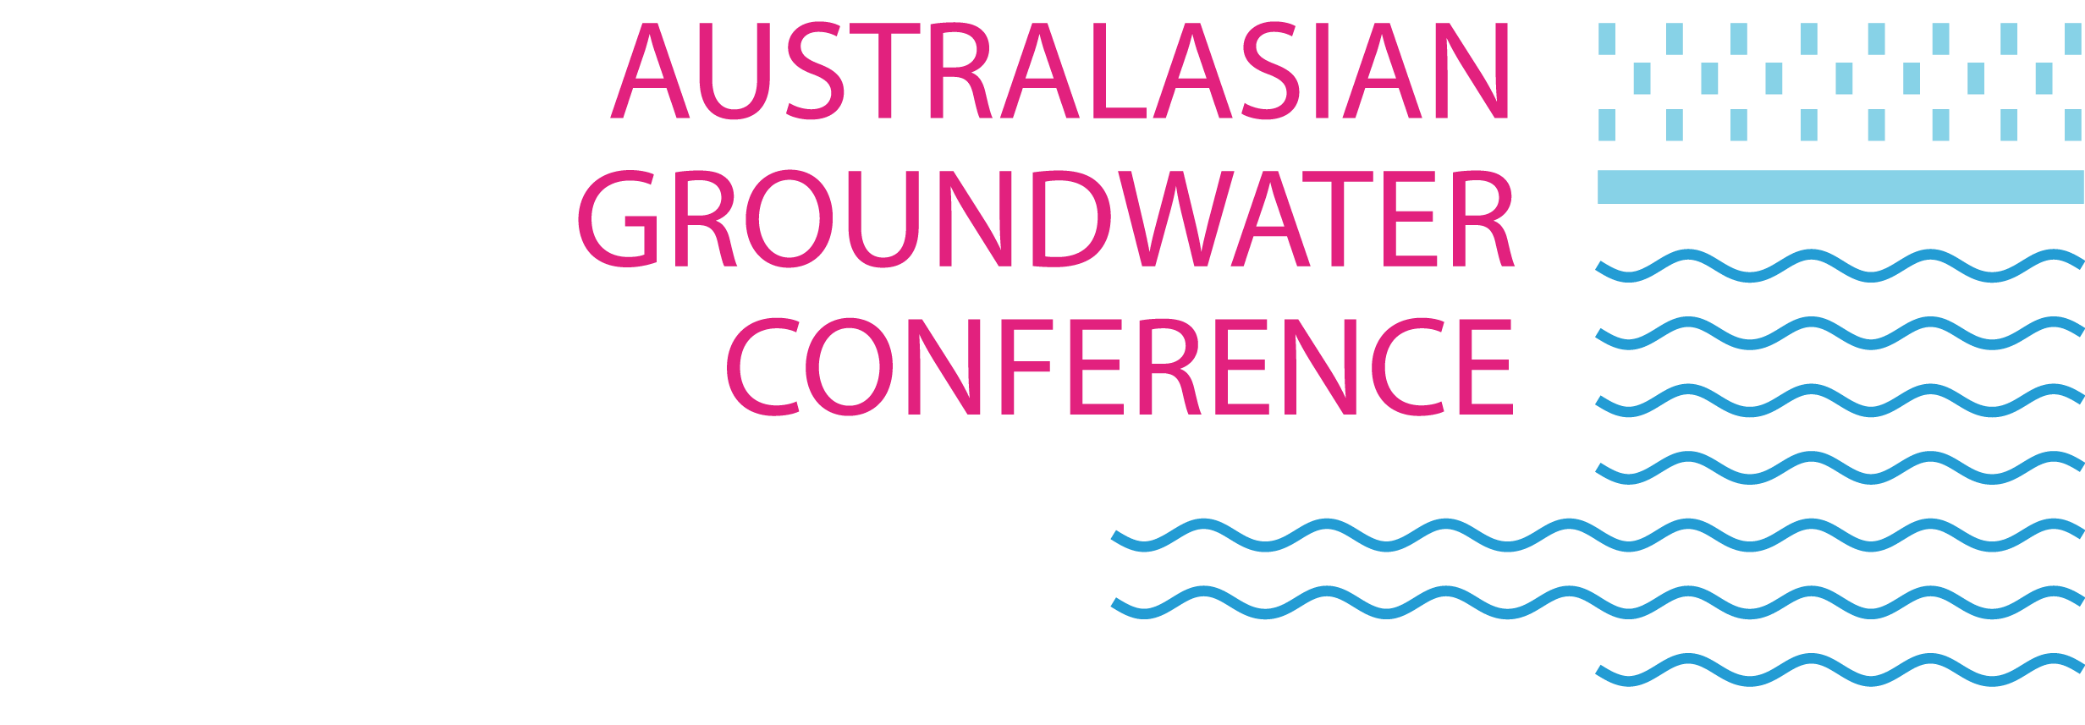 Australasian Groundwater Conference 2022